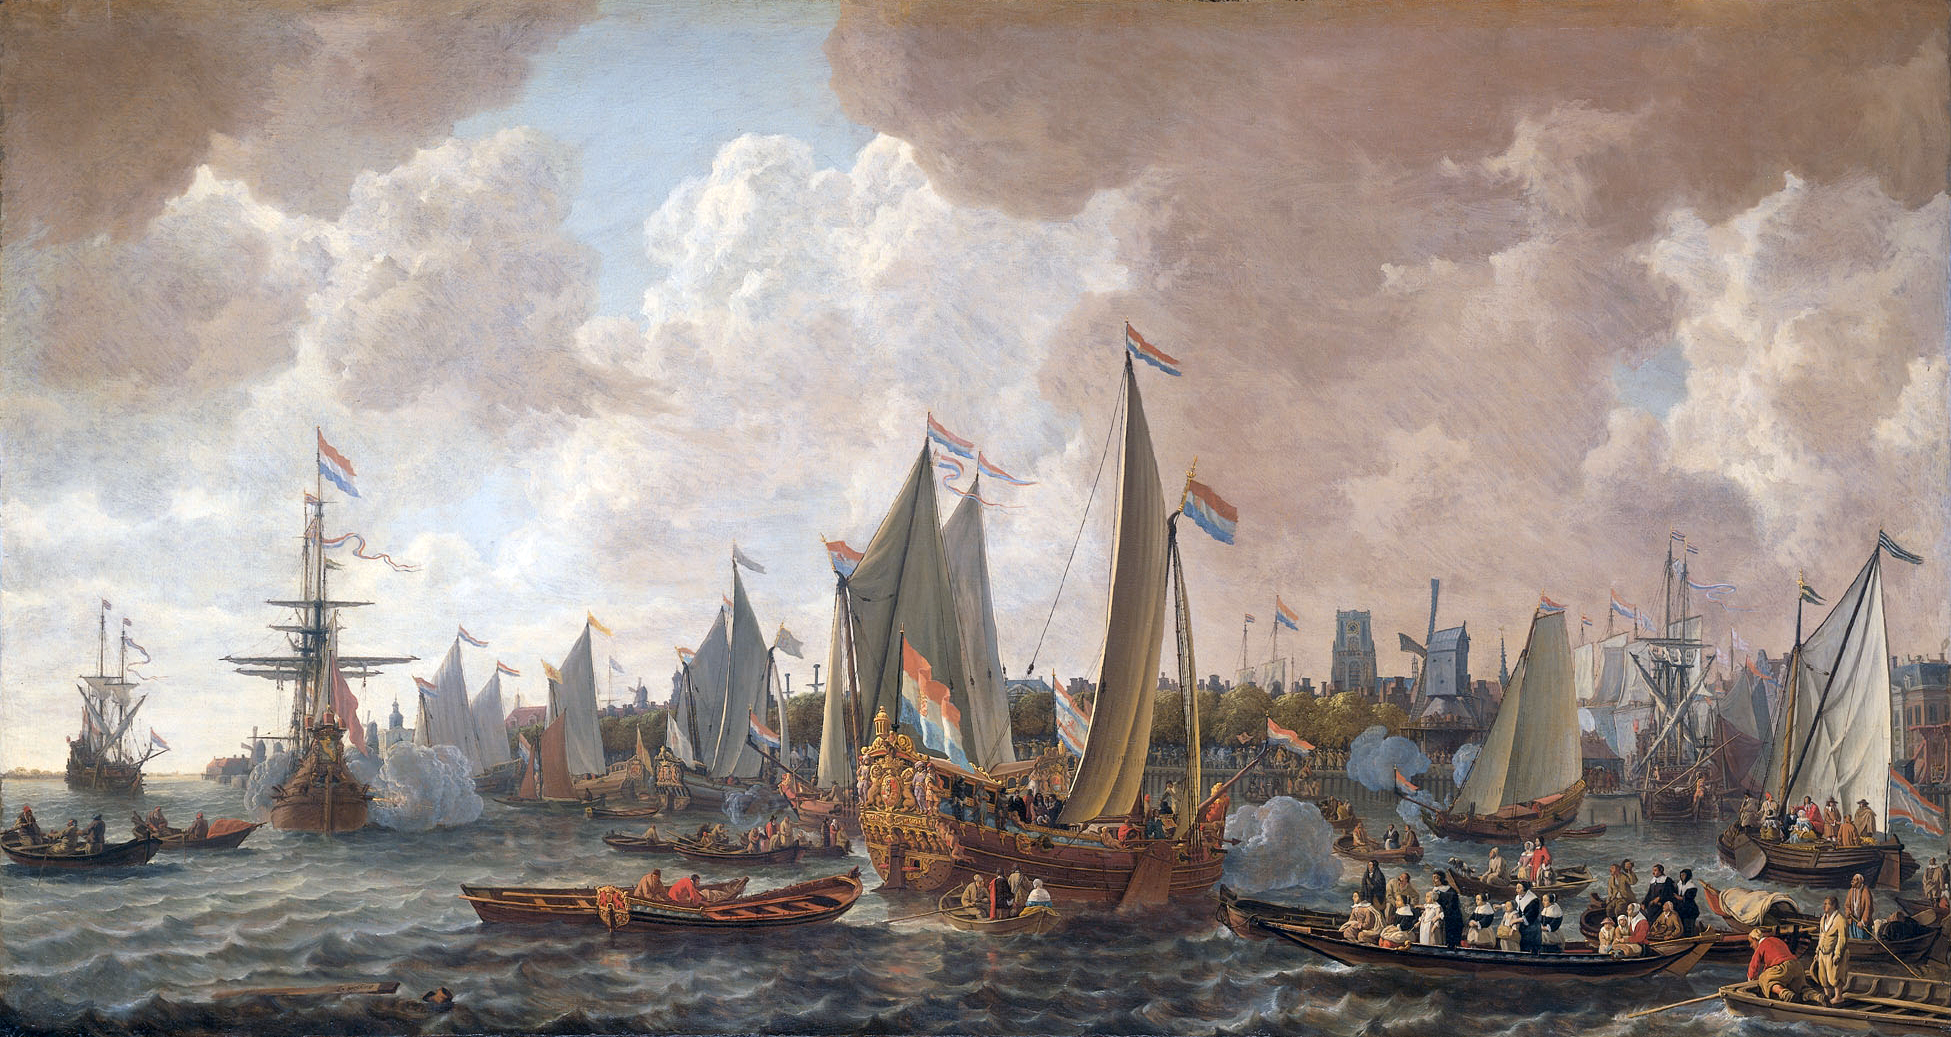 Lieve Pieterszoon Verschuier: The Arrival of King Charles II of England in Rotterdam, May 24, 1660